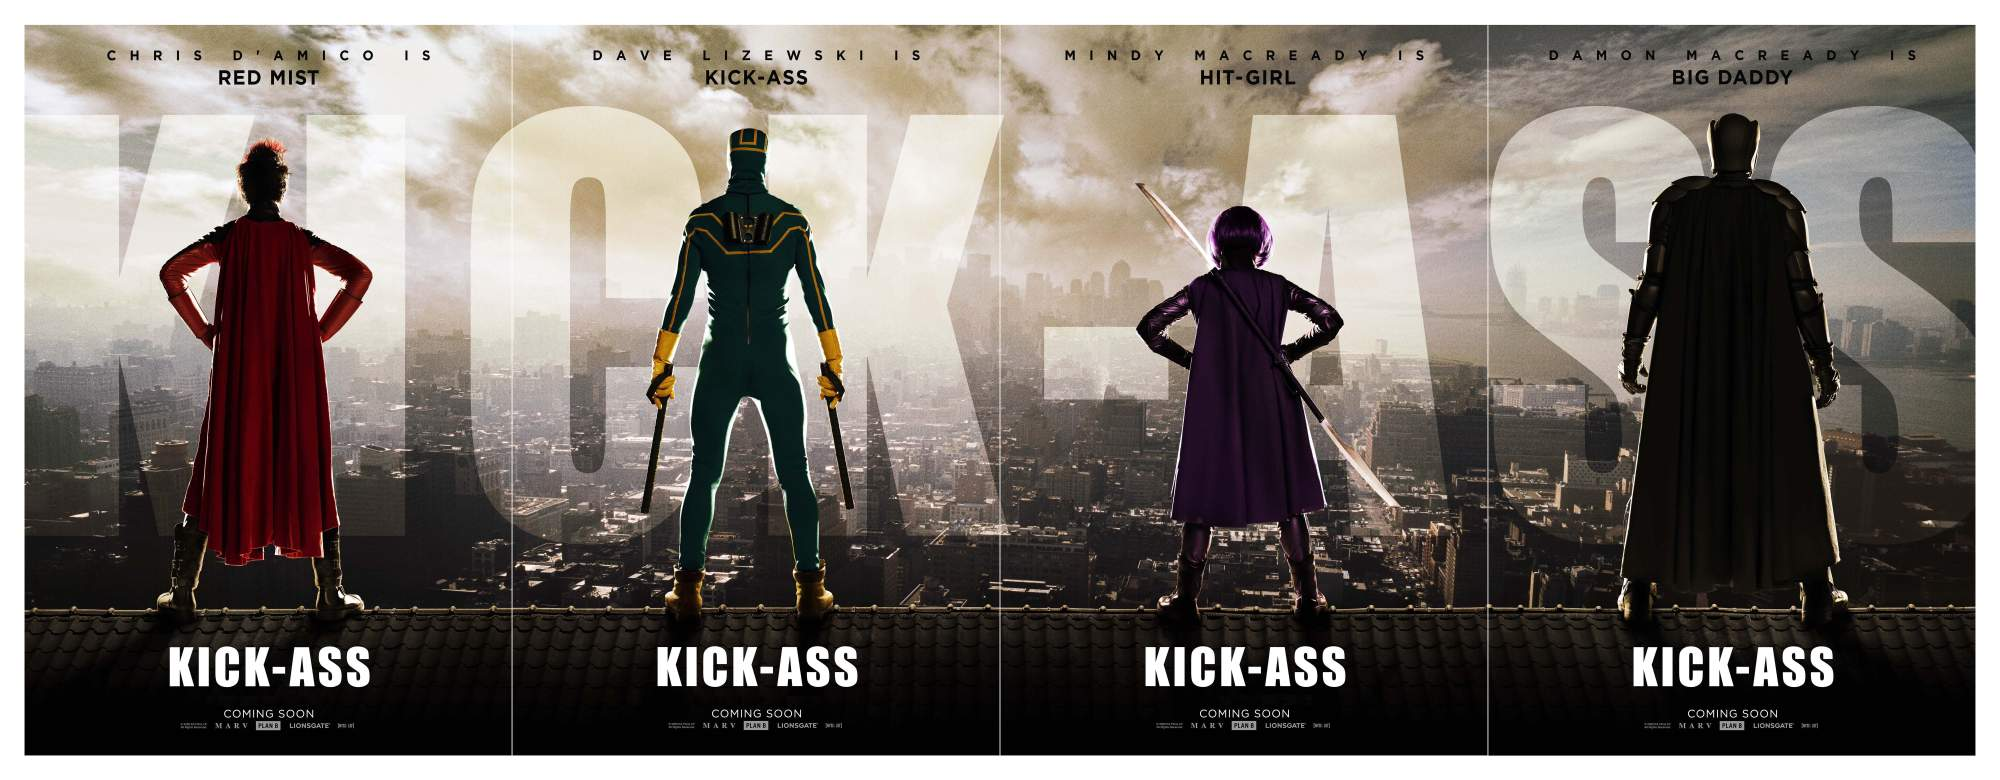 https://i1.wp.com/youbentmywookie.com/wookie/gallery/1109_four-new-kick-ass-character-posters-debut-online/kick-ass-movie-poster.jpg?quality=88&strip